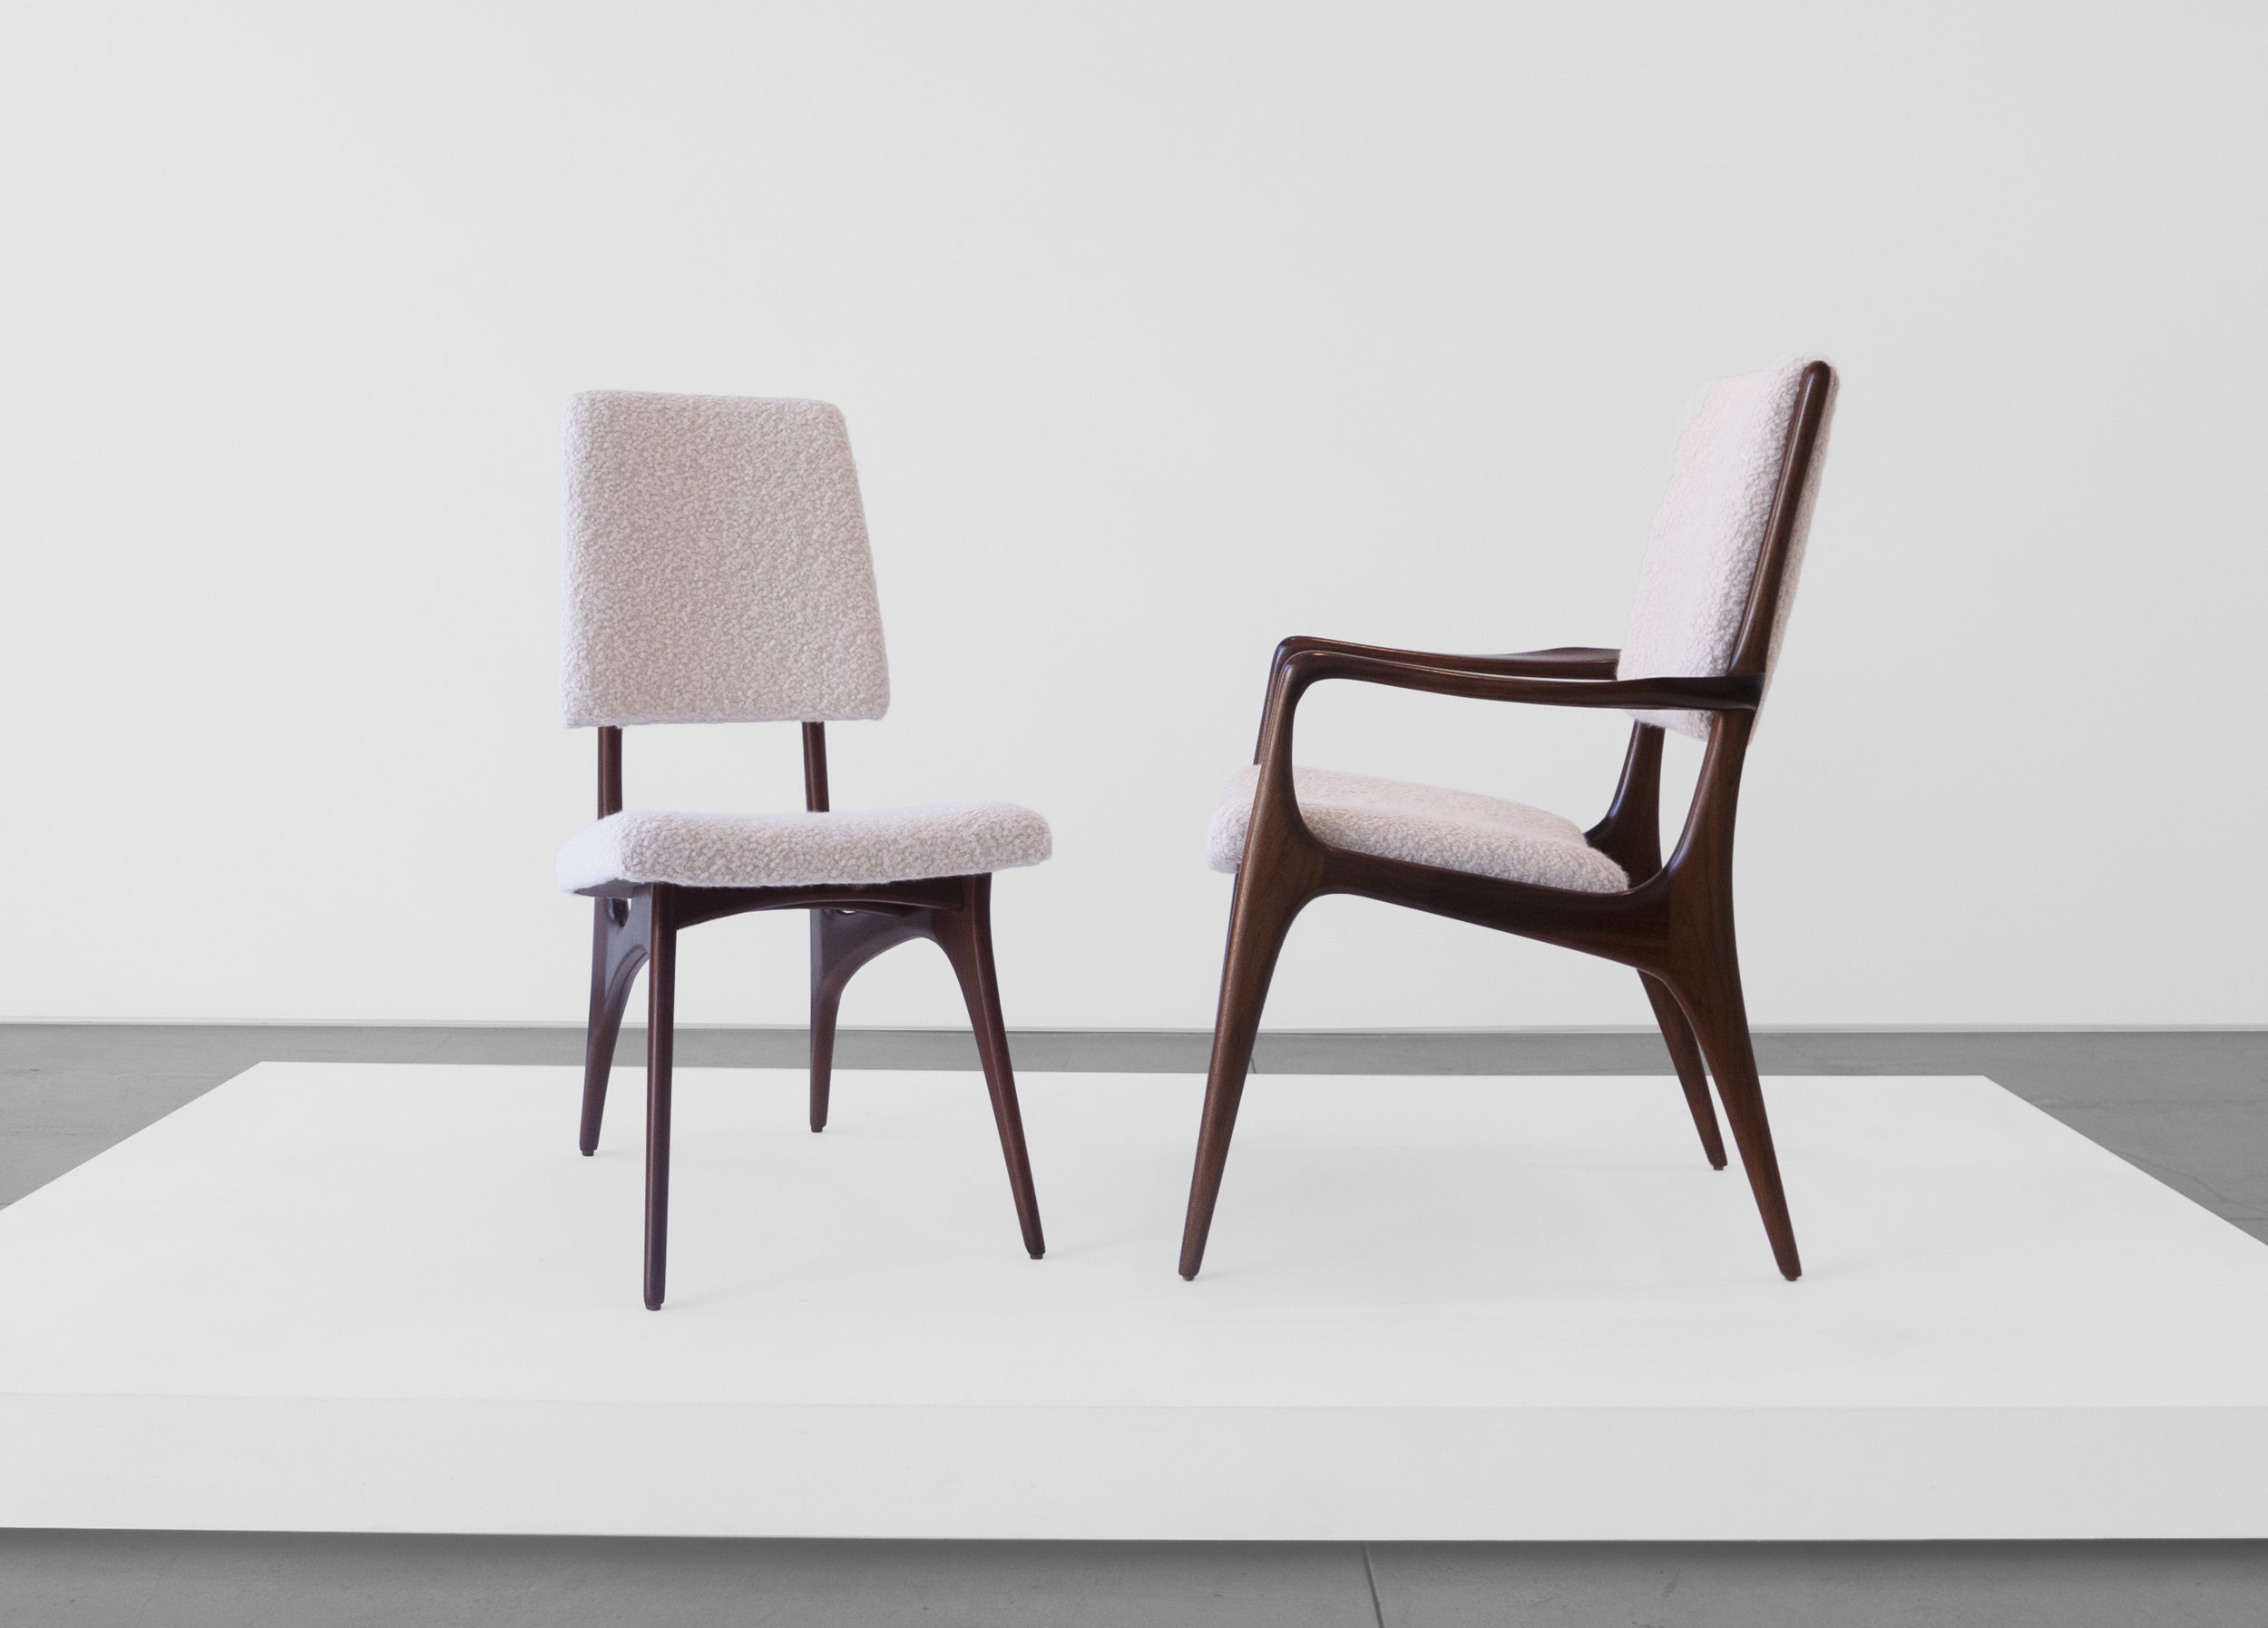 Vladimir Kagan Designed for Dreyfuss, Dining Chairs, c. 1950-1959, Walnut, Upholstery, 36.5 H x 24 W x 25 D inches_3.jpg